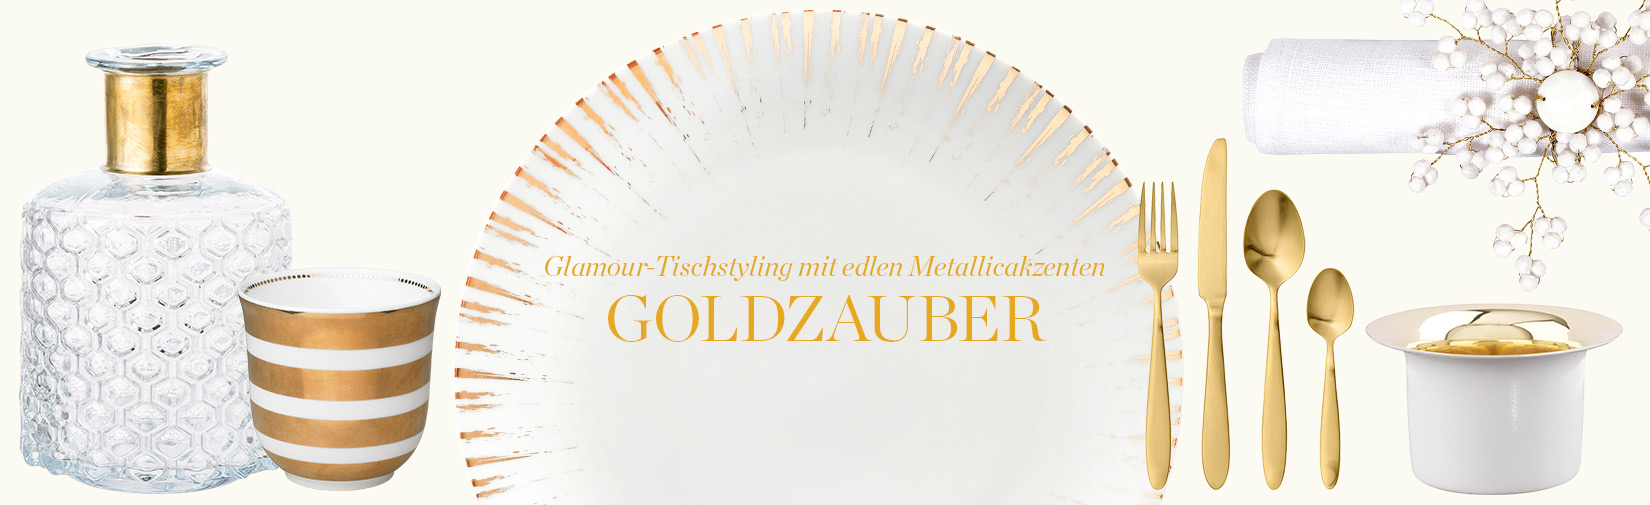 LP_Goldzauber_Desktop